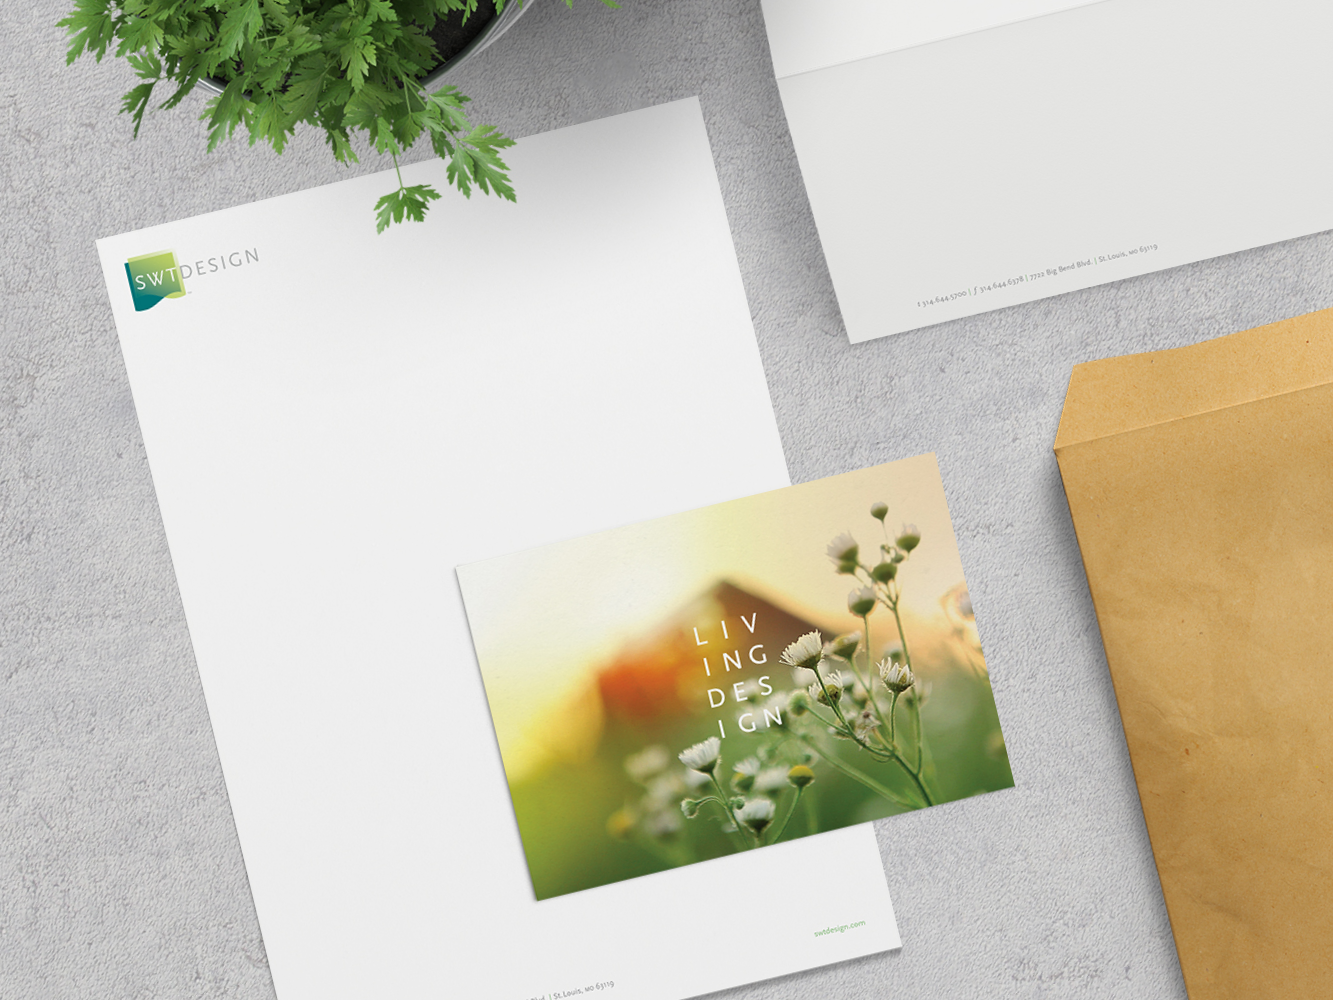 Image of SWT Design's stationary and postcard on a desktop